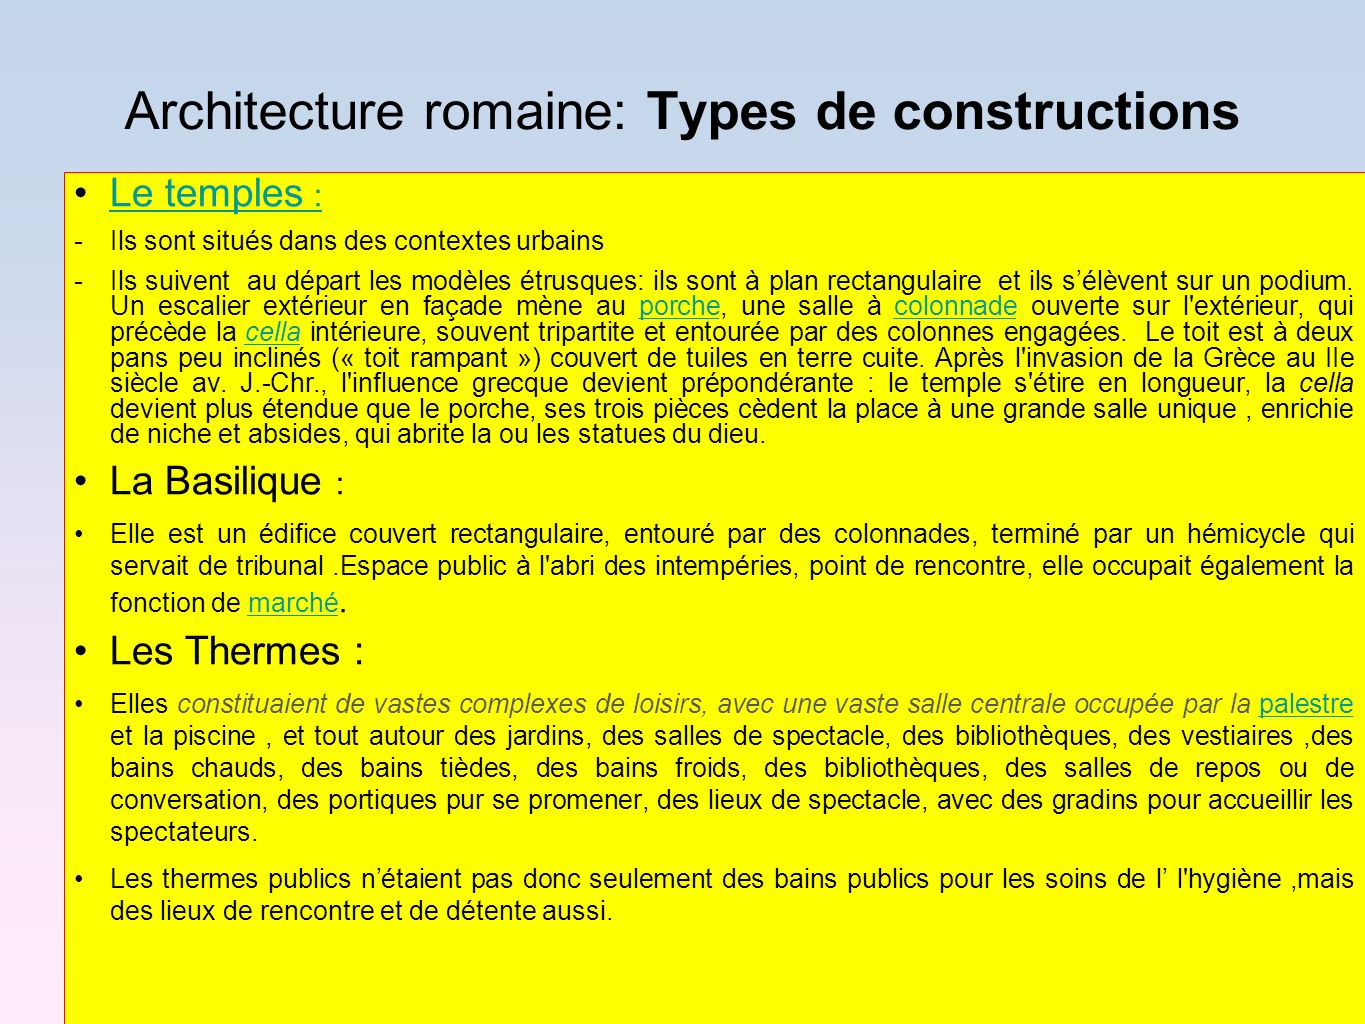 Architecture romaine: Types de constructions